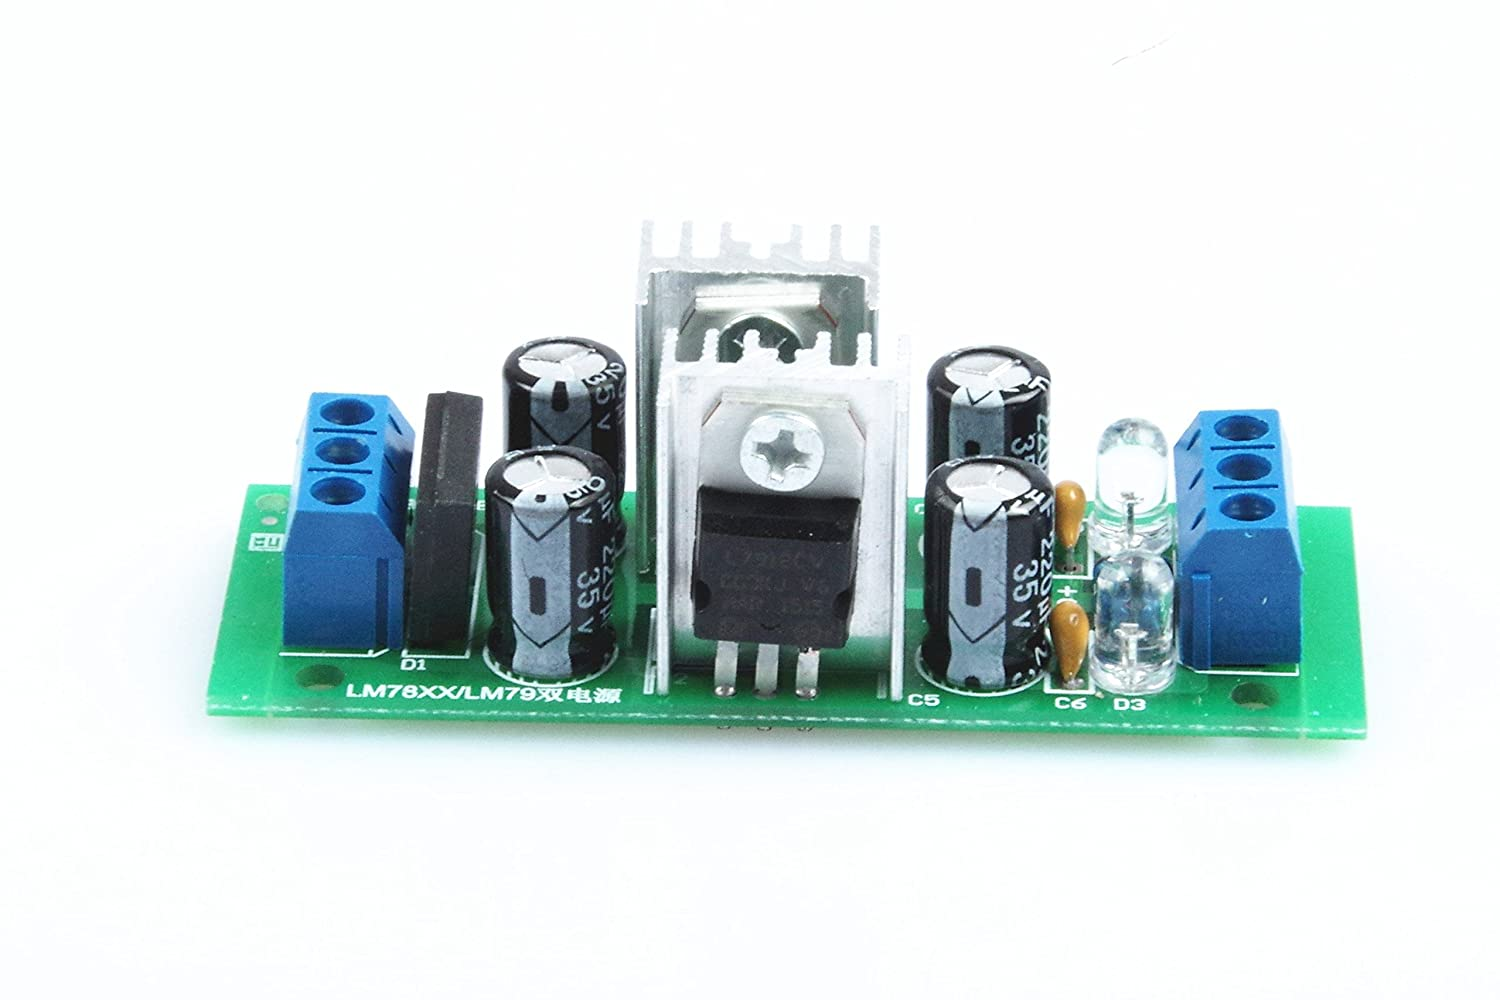 Knacro Lm7812 Lm7912 Dual Voltage Regulator Three Power Rectifier Filter Modulein Integrated Circuits Terminal Supply Module 12v With Bridge